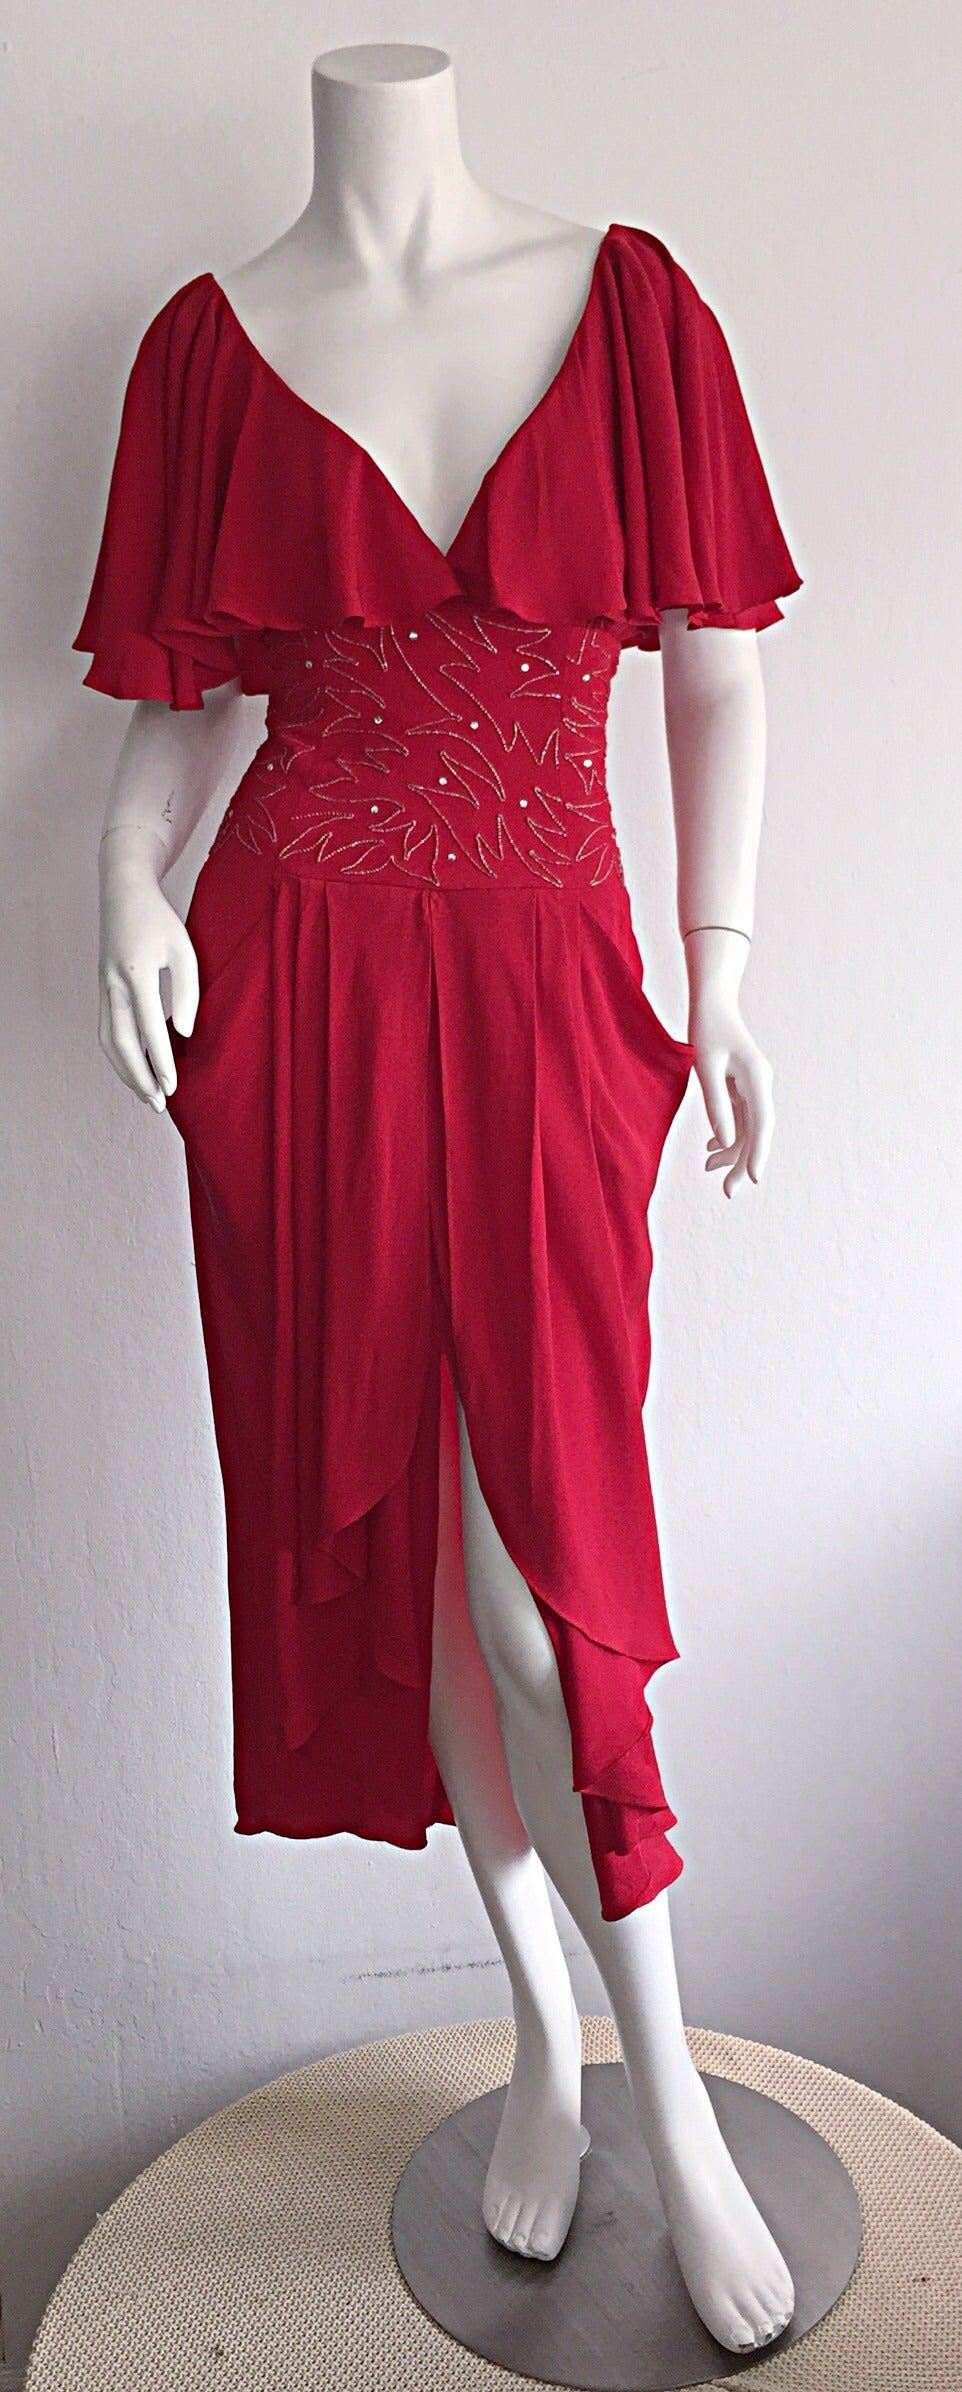 Beautiful vintage Eletra Casadei lipstic red dress! Casadei dresses are hard to come by, and when they arise, they are scooped up quick! This beauty is a prime of example of that reason! Extremely flattering fit, with a sweetheart neckline, fitted